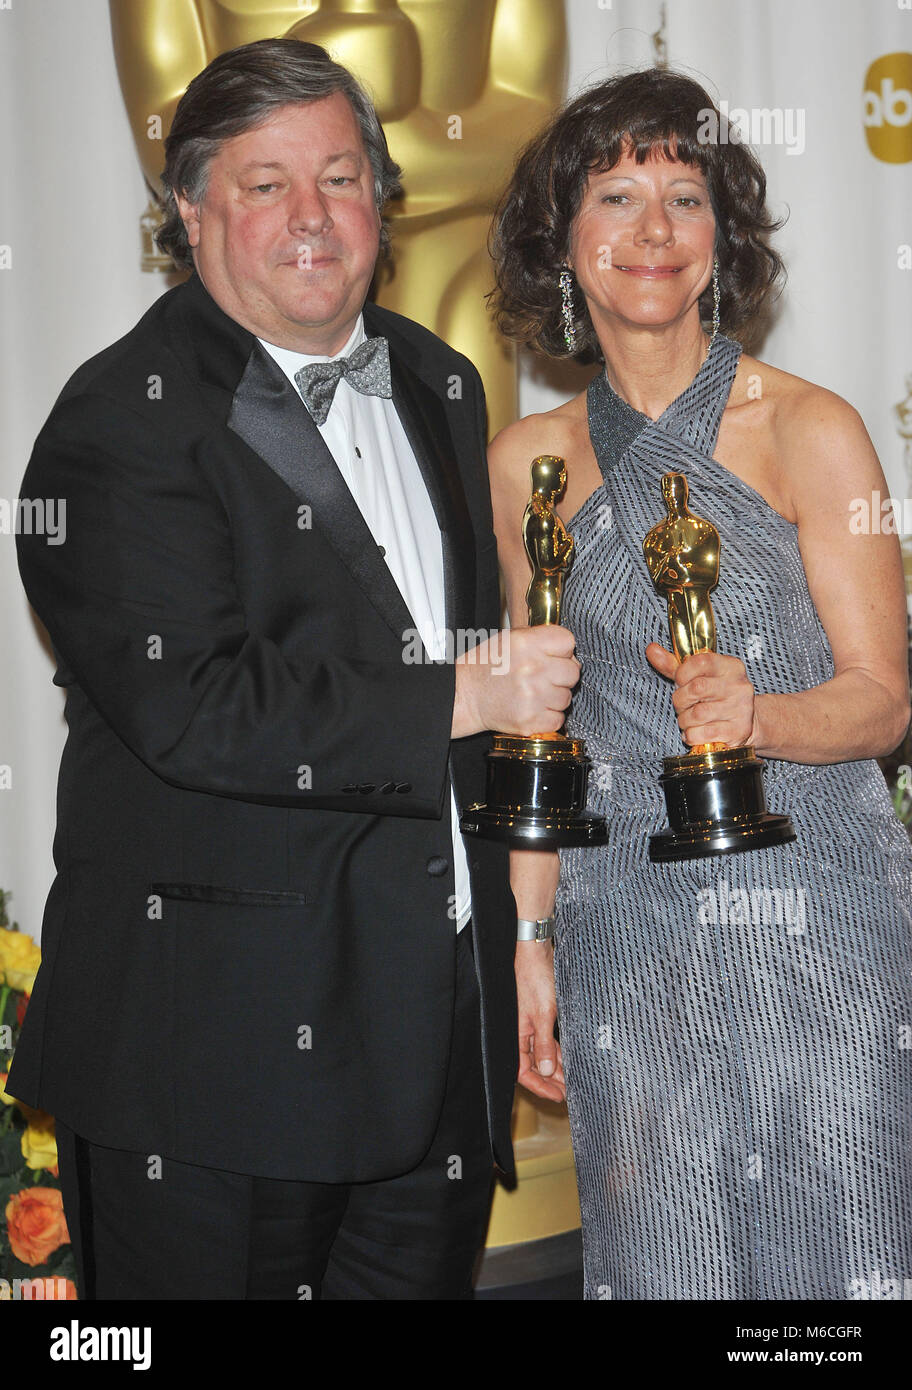 Kirk Simon  and Karen Goodman - Oscars  at the 83th Academy Awards at the Kodak Theatre In Los Angeles.Kirk Simon - Stock Image